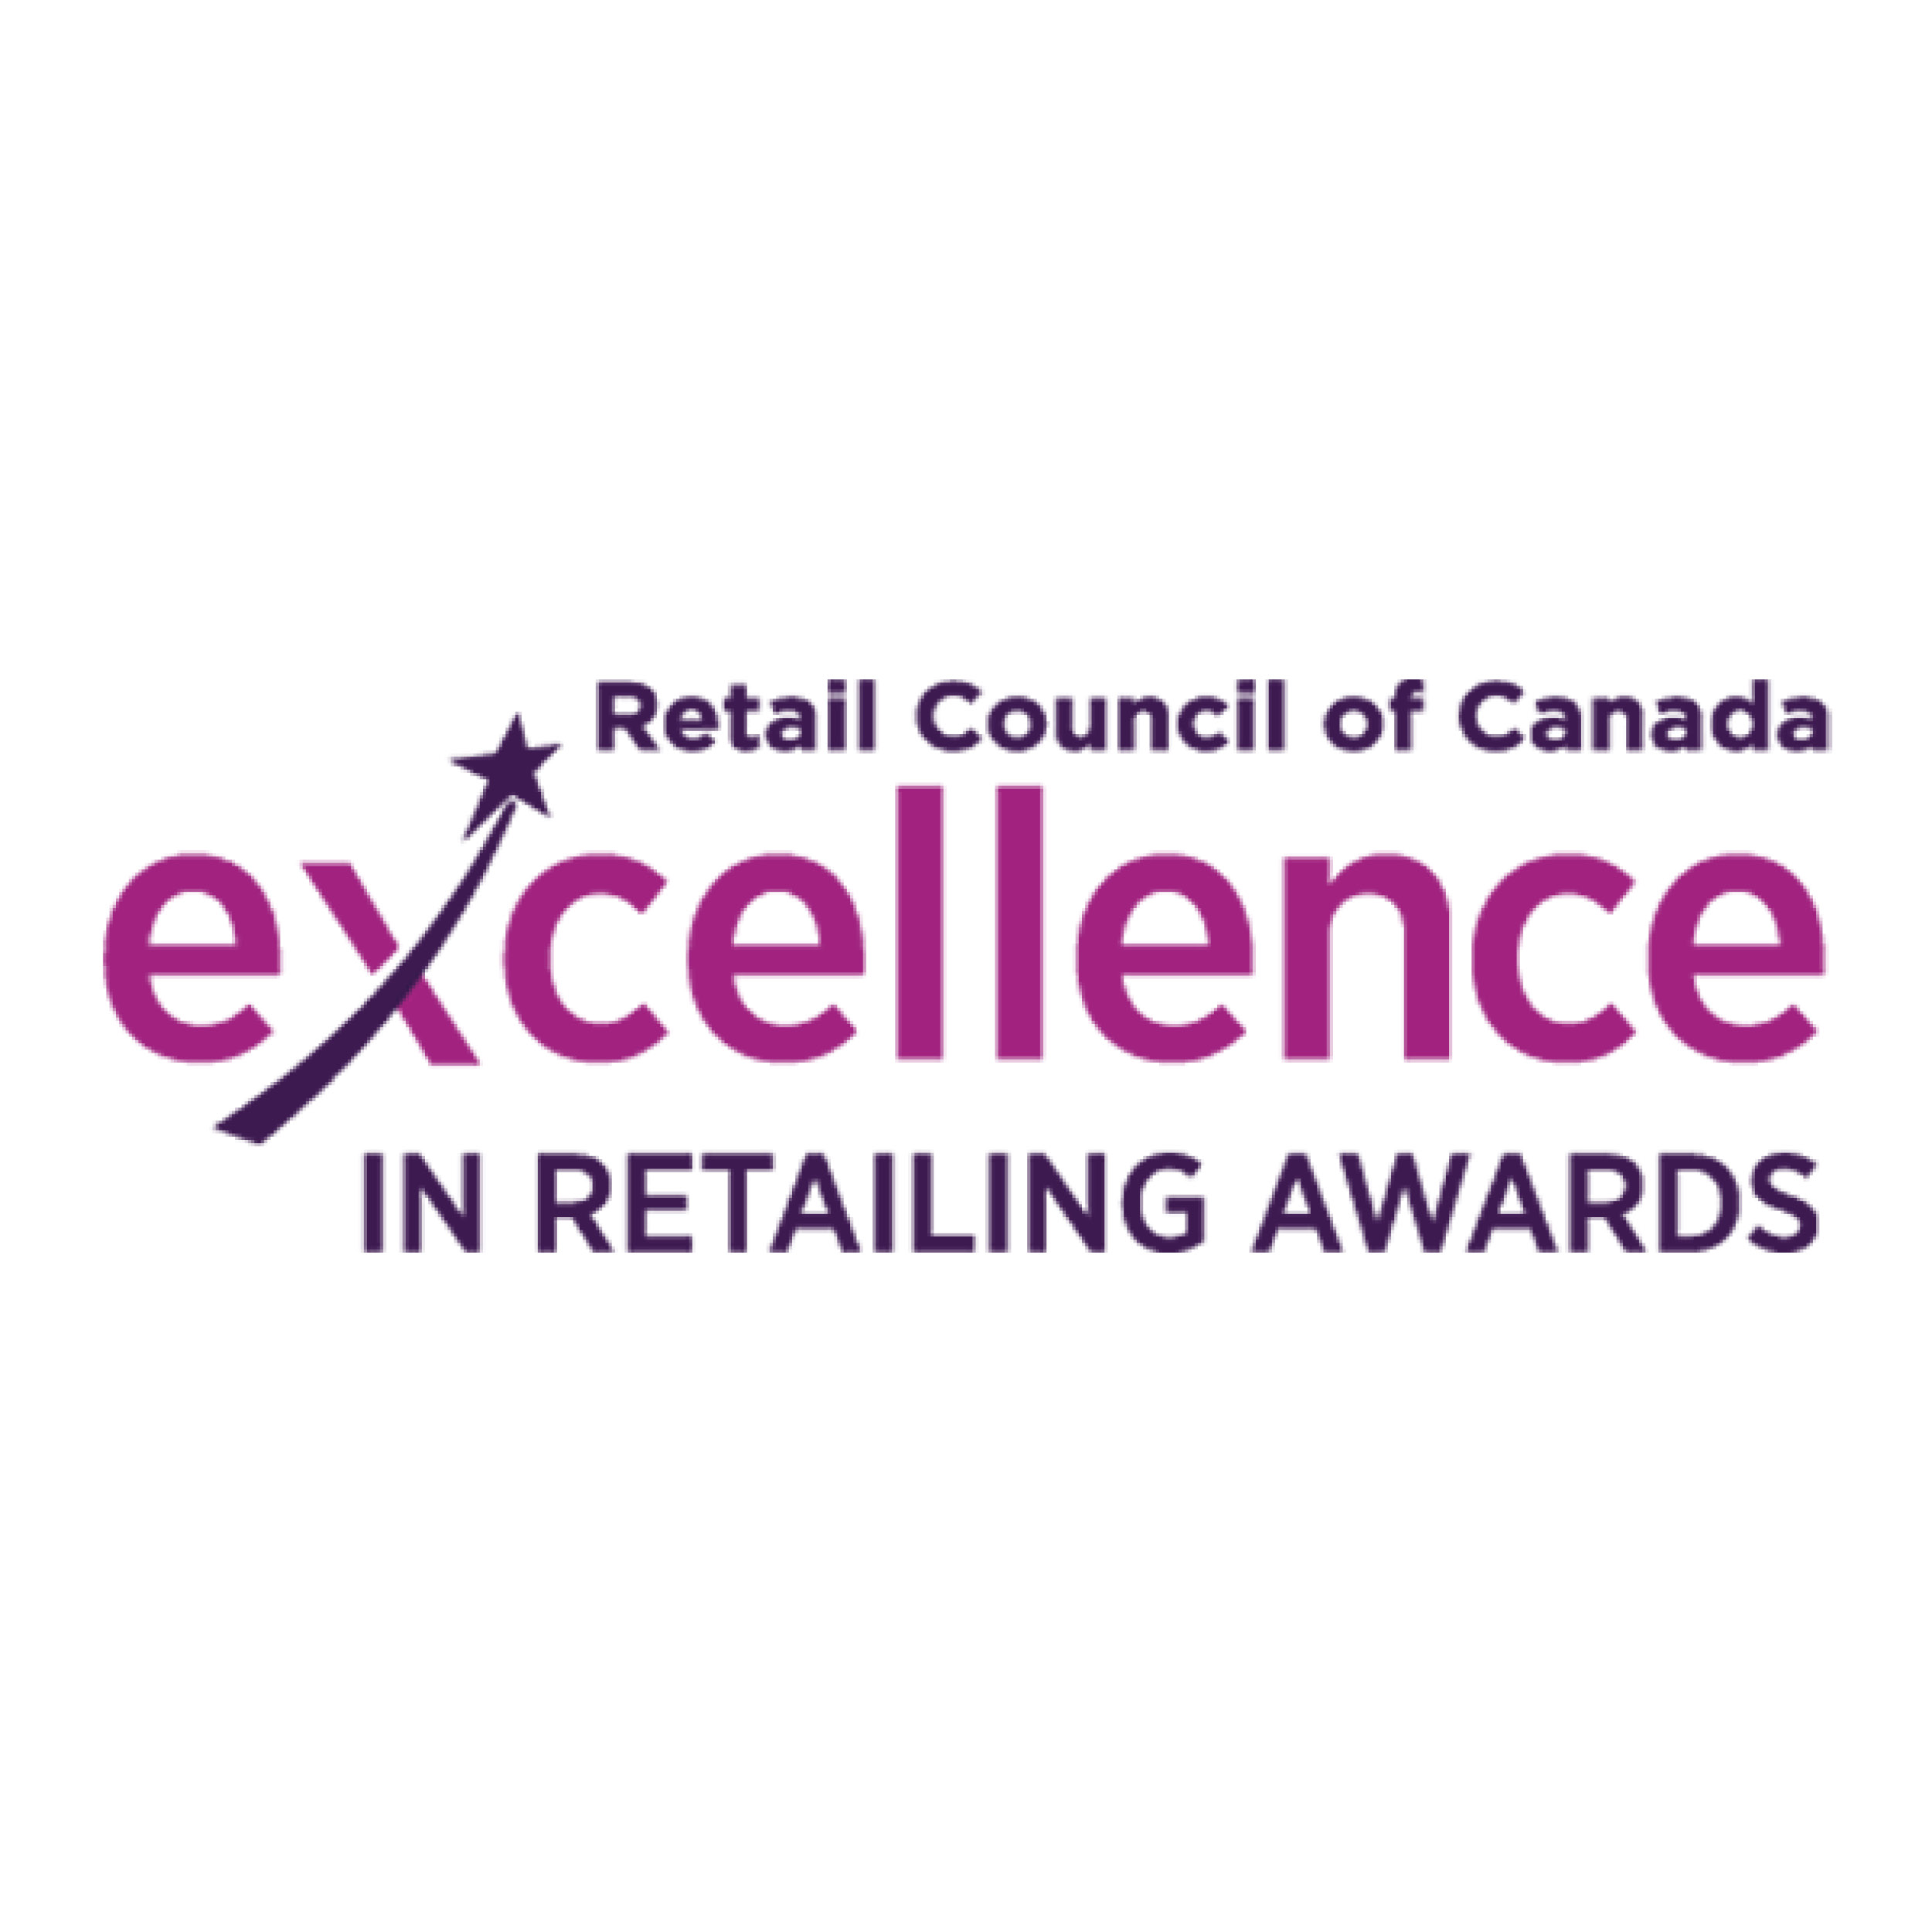 logo for the Retail Council of Canada Excellence in Retailing Awards 2018